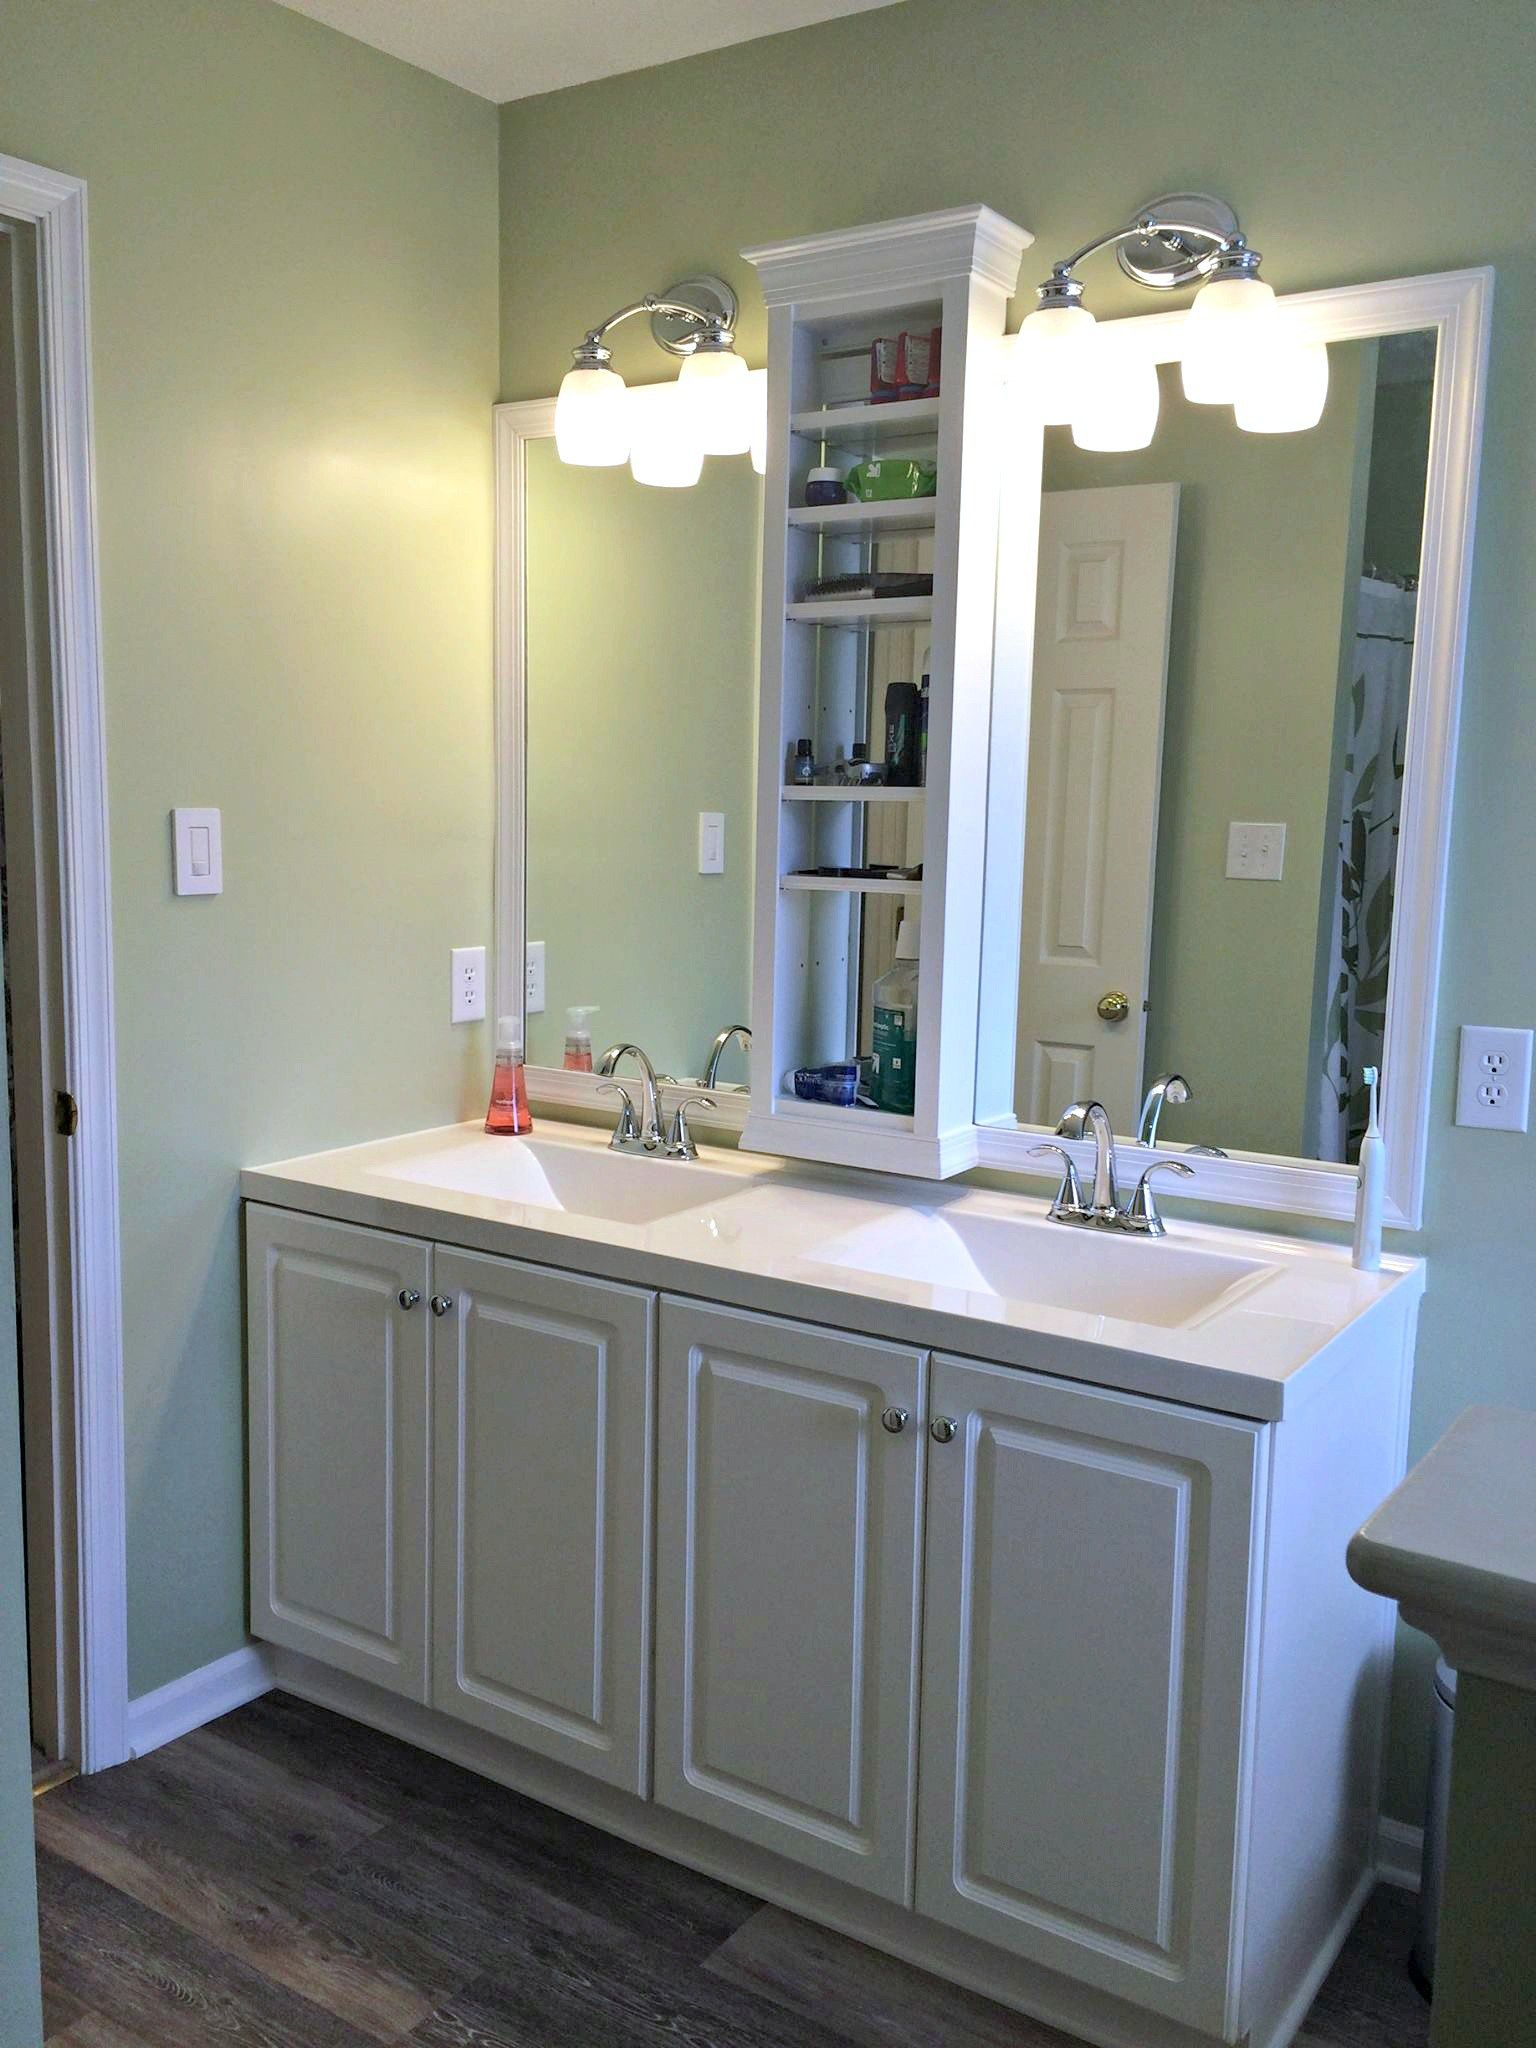 Master Bathroom vanity sink mirror update built in shelves framed